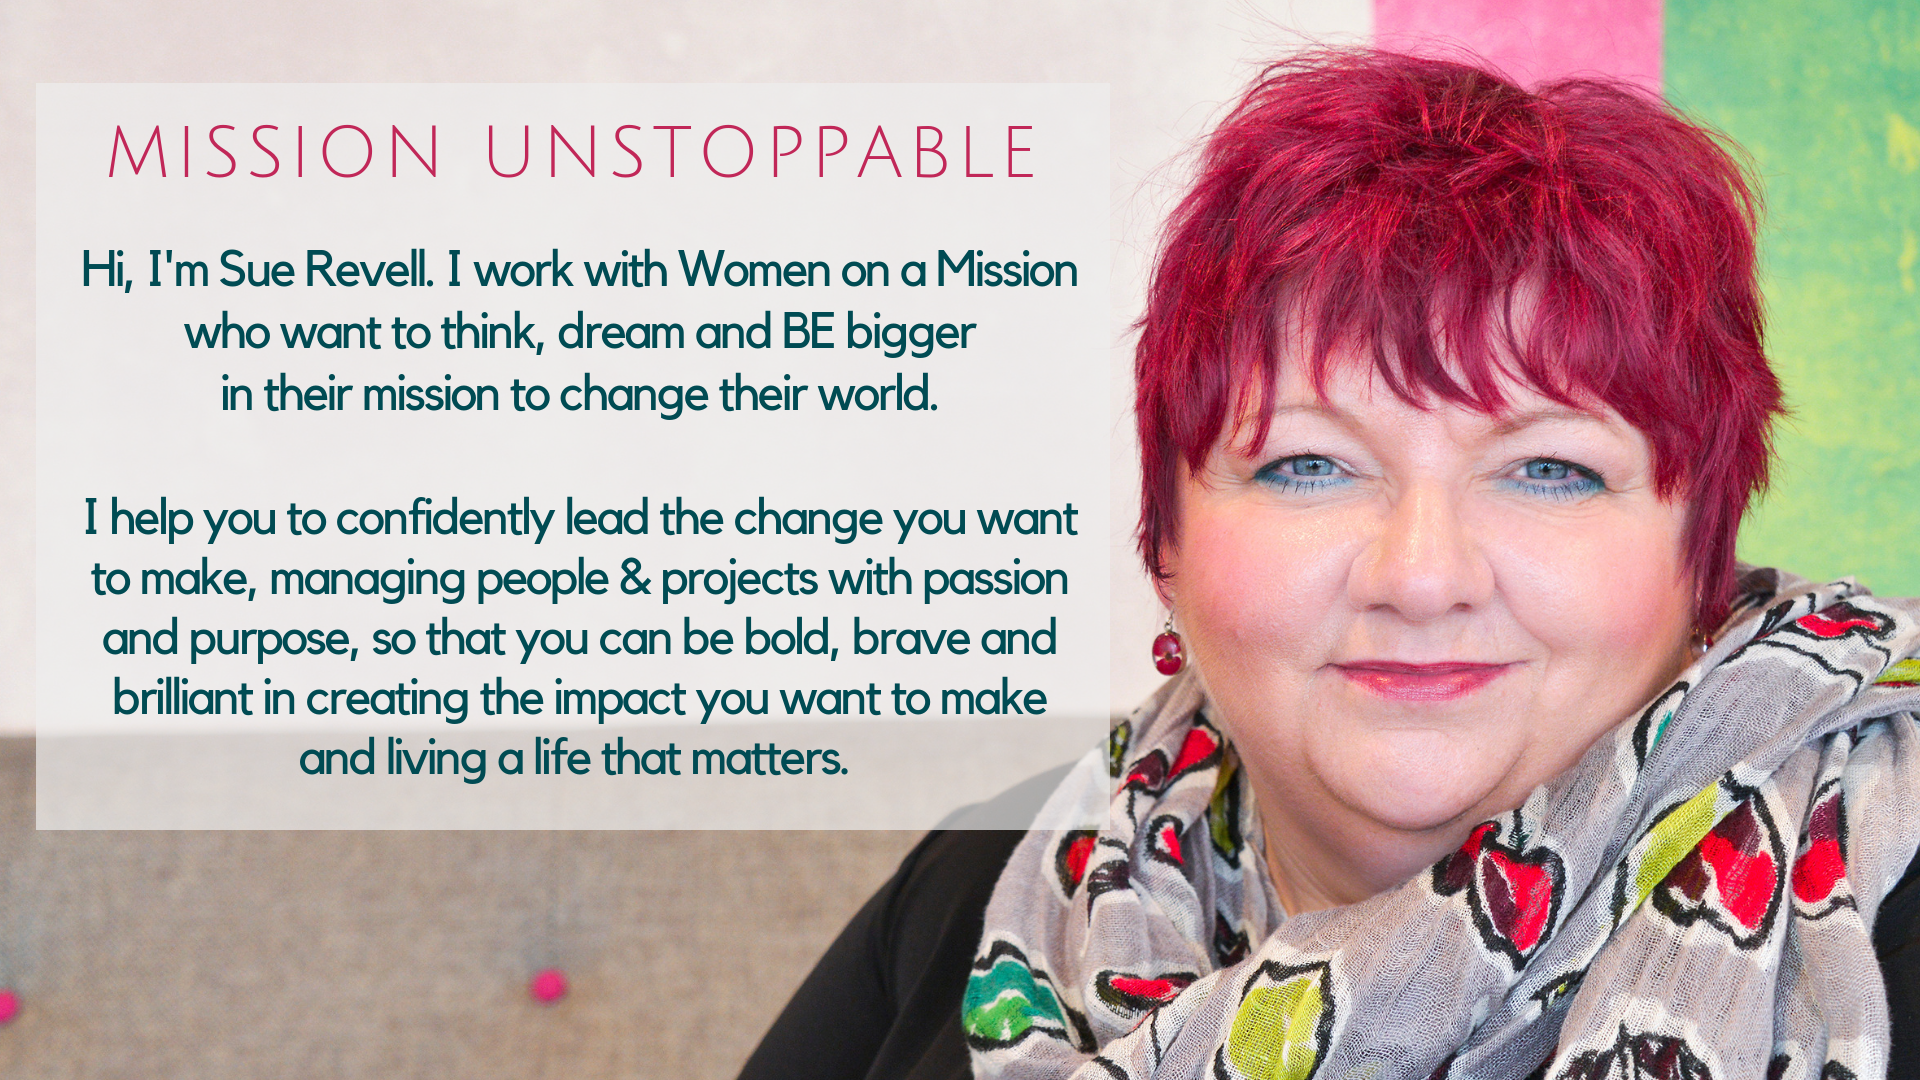 Sue Revell - Mission Unstoppable image header